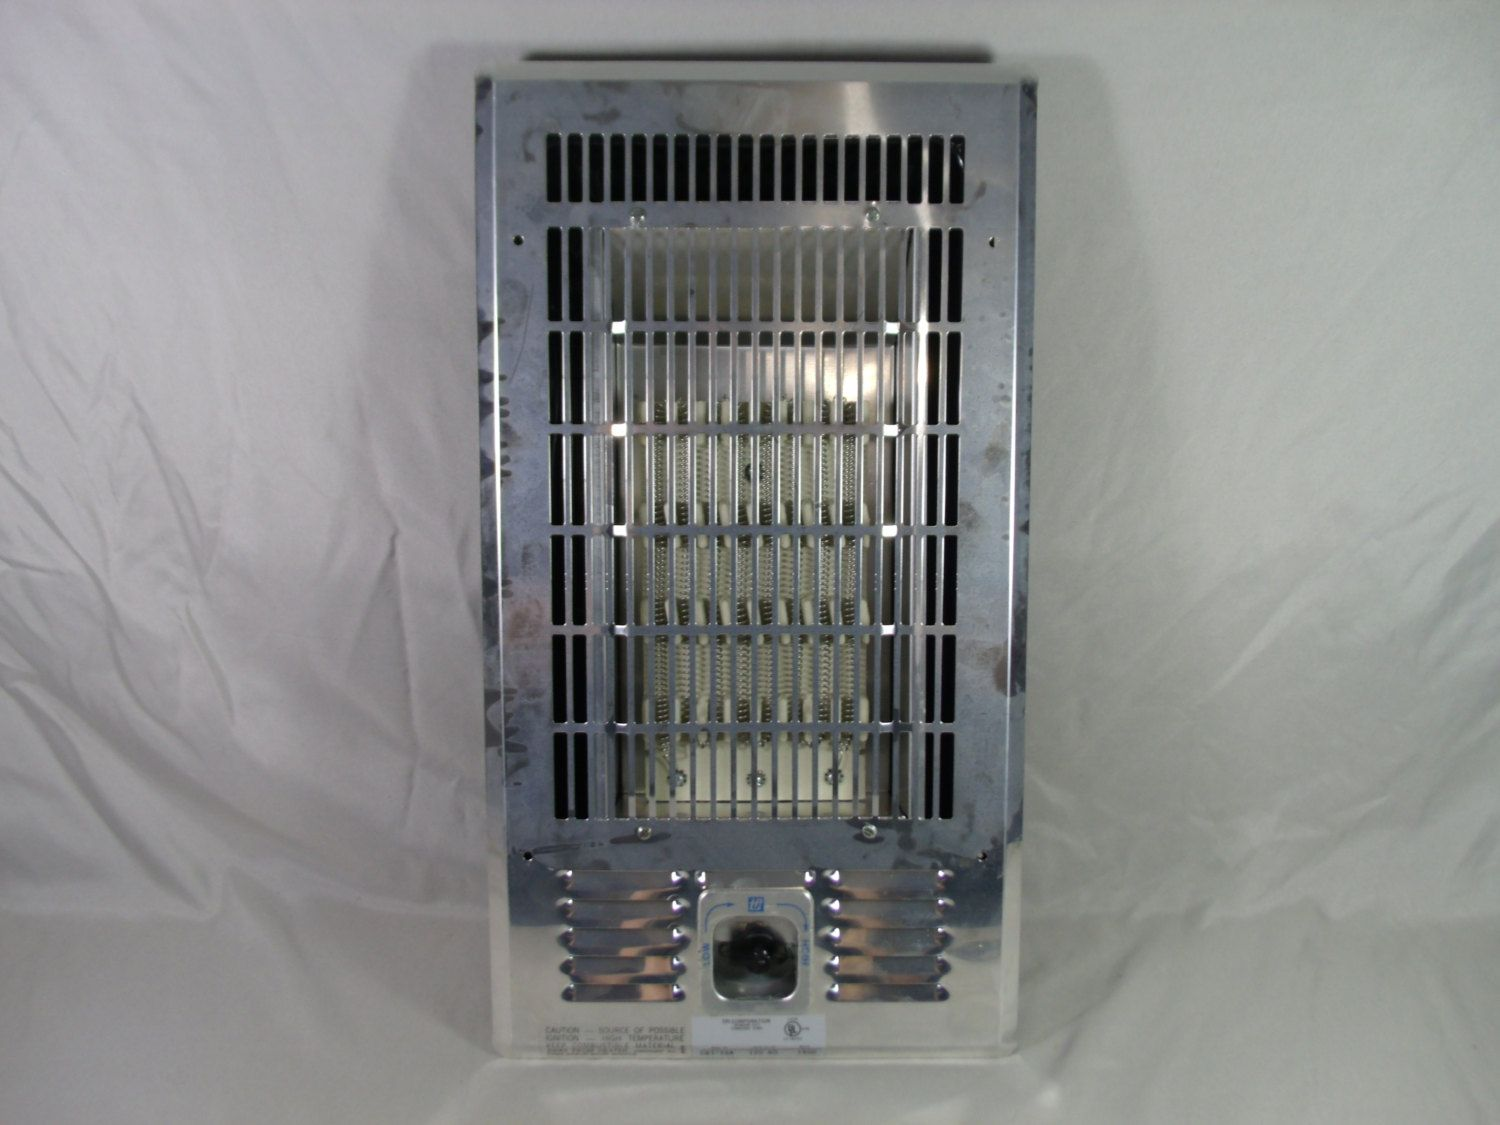 Vintage Tpi Electric Coil Radiant Wall Heater Cb1 15a With Thermostat 120v 1500 Watt Chrome Nos New Old Stock Heater Locker Storage Electricity